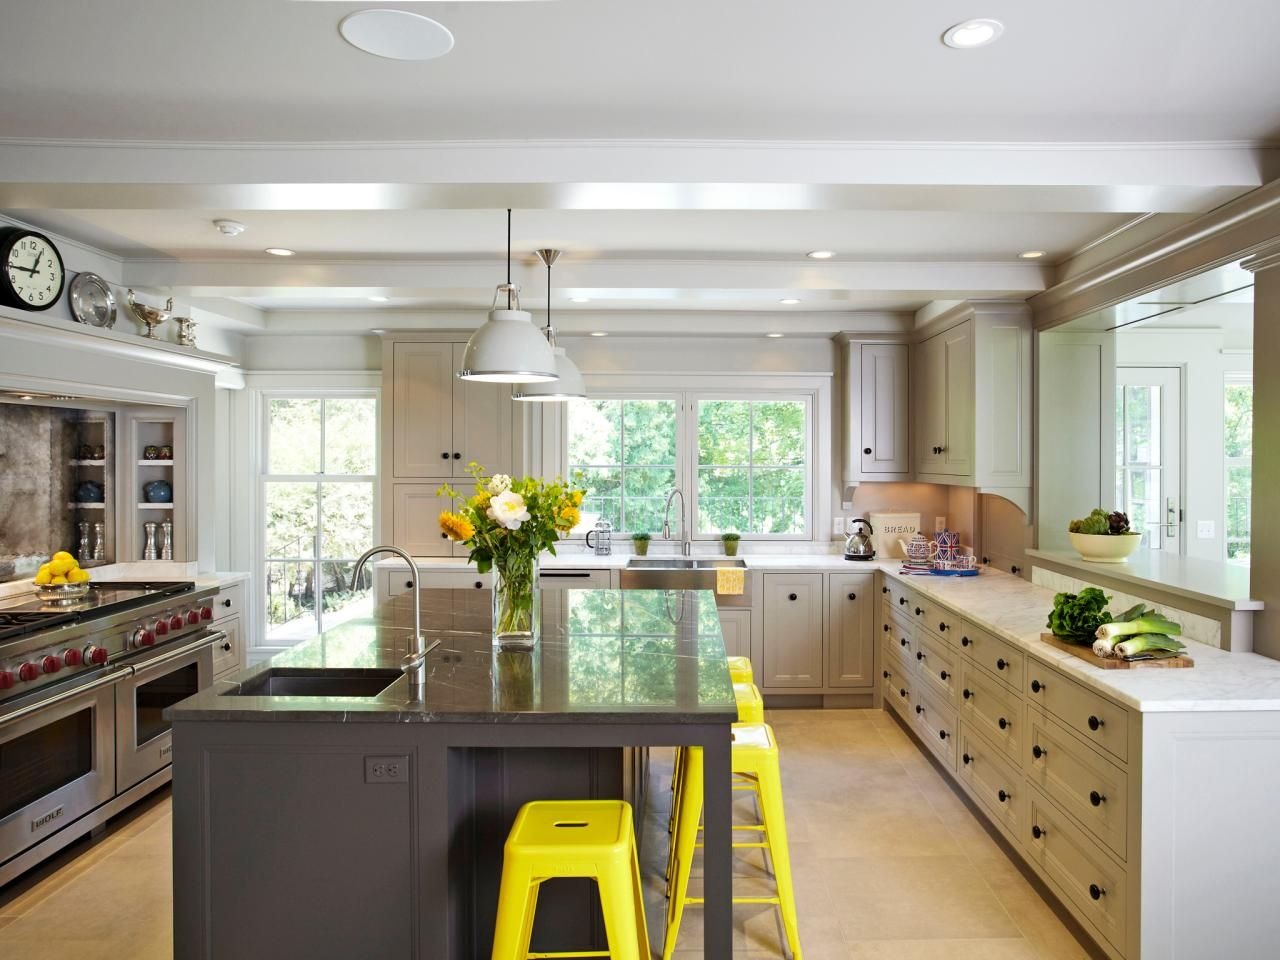 a long counter of drawers with no upper cabinets allows the owners